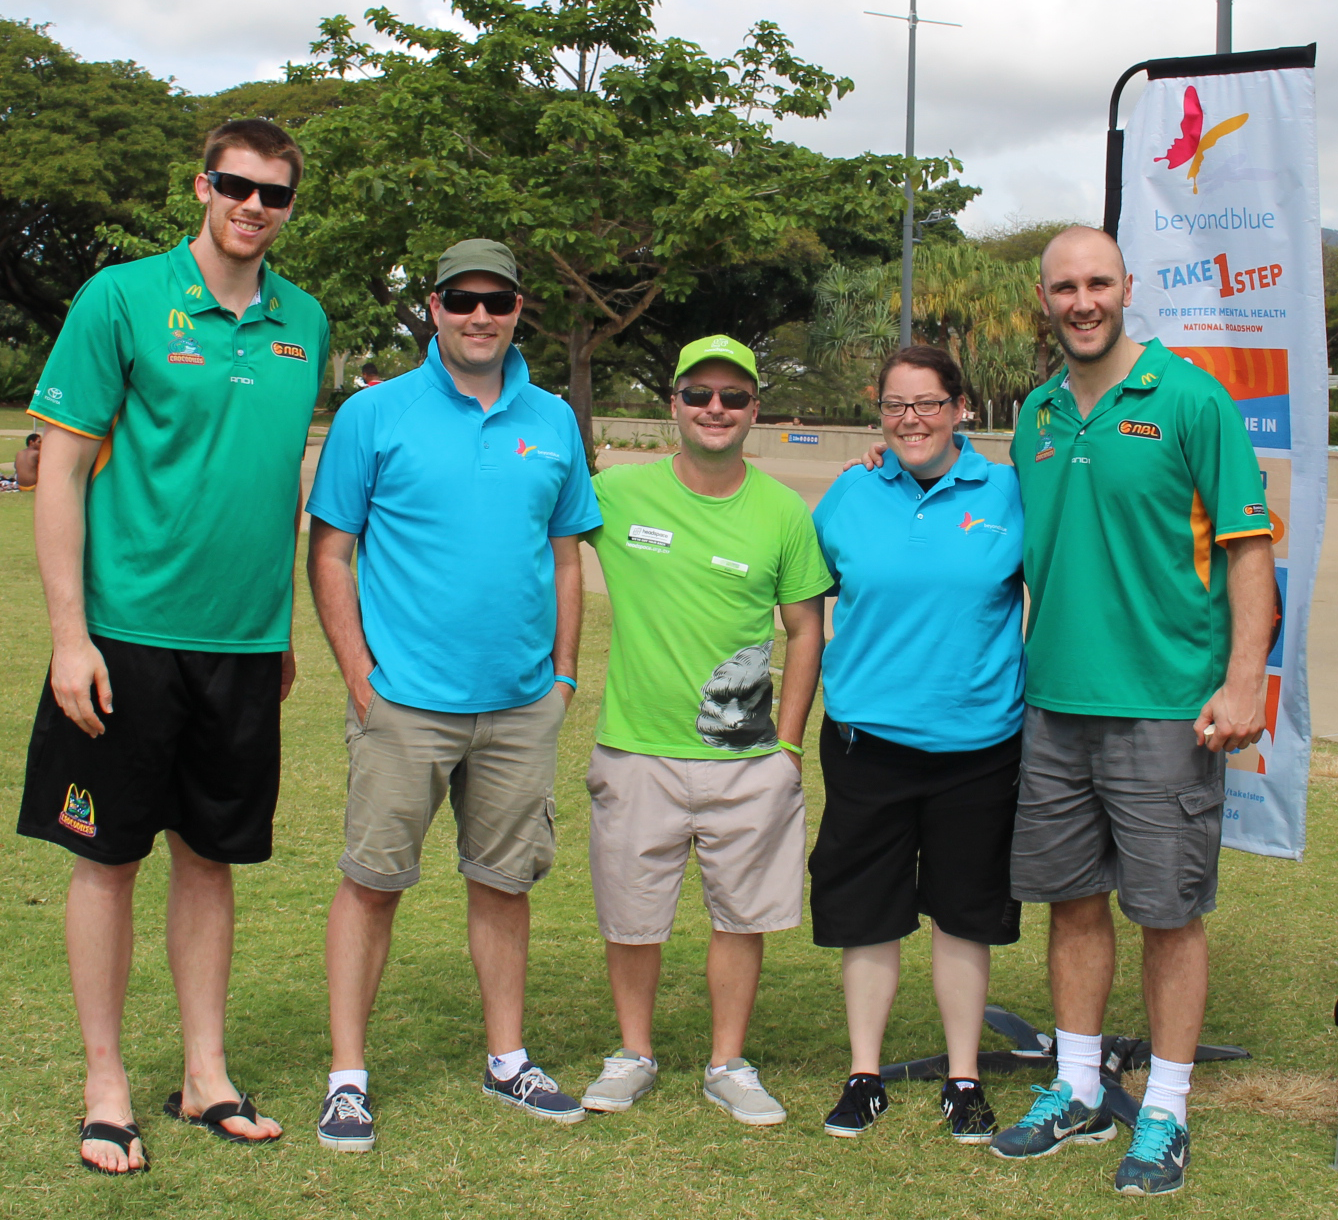 Townsville Crocodiles' Brian Conklin (far left) and Steven Markovic (far right) stopped by to say g'day at the free community barbecue at the Riverway Precinct in Townsville: QLD.